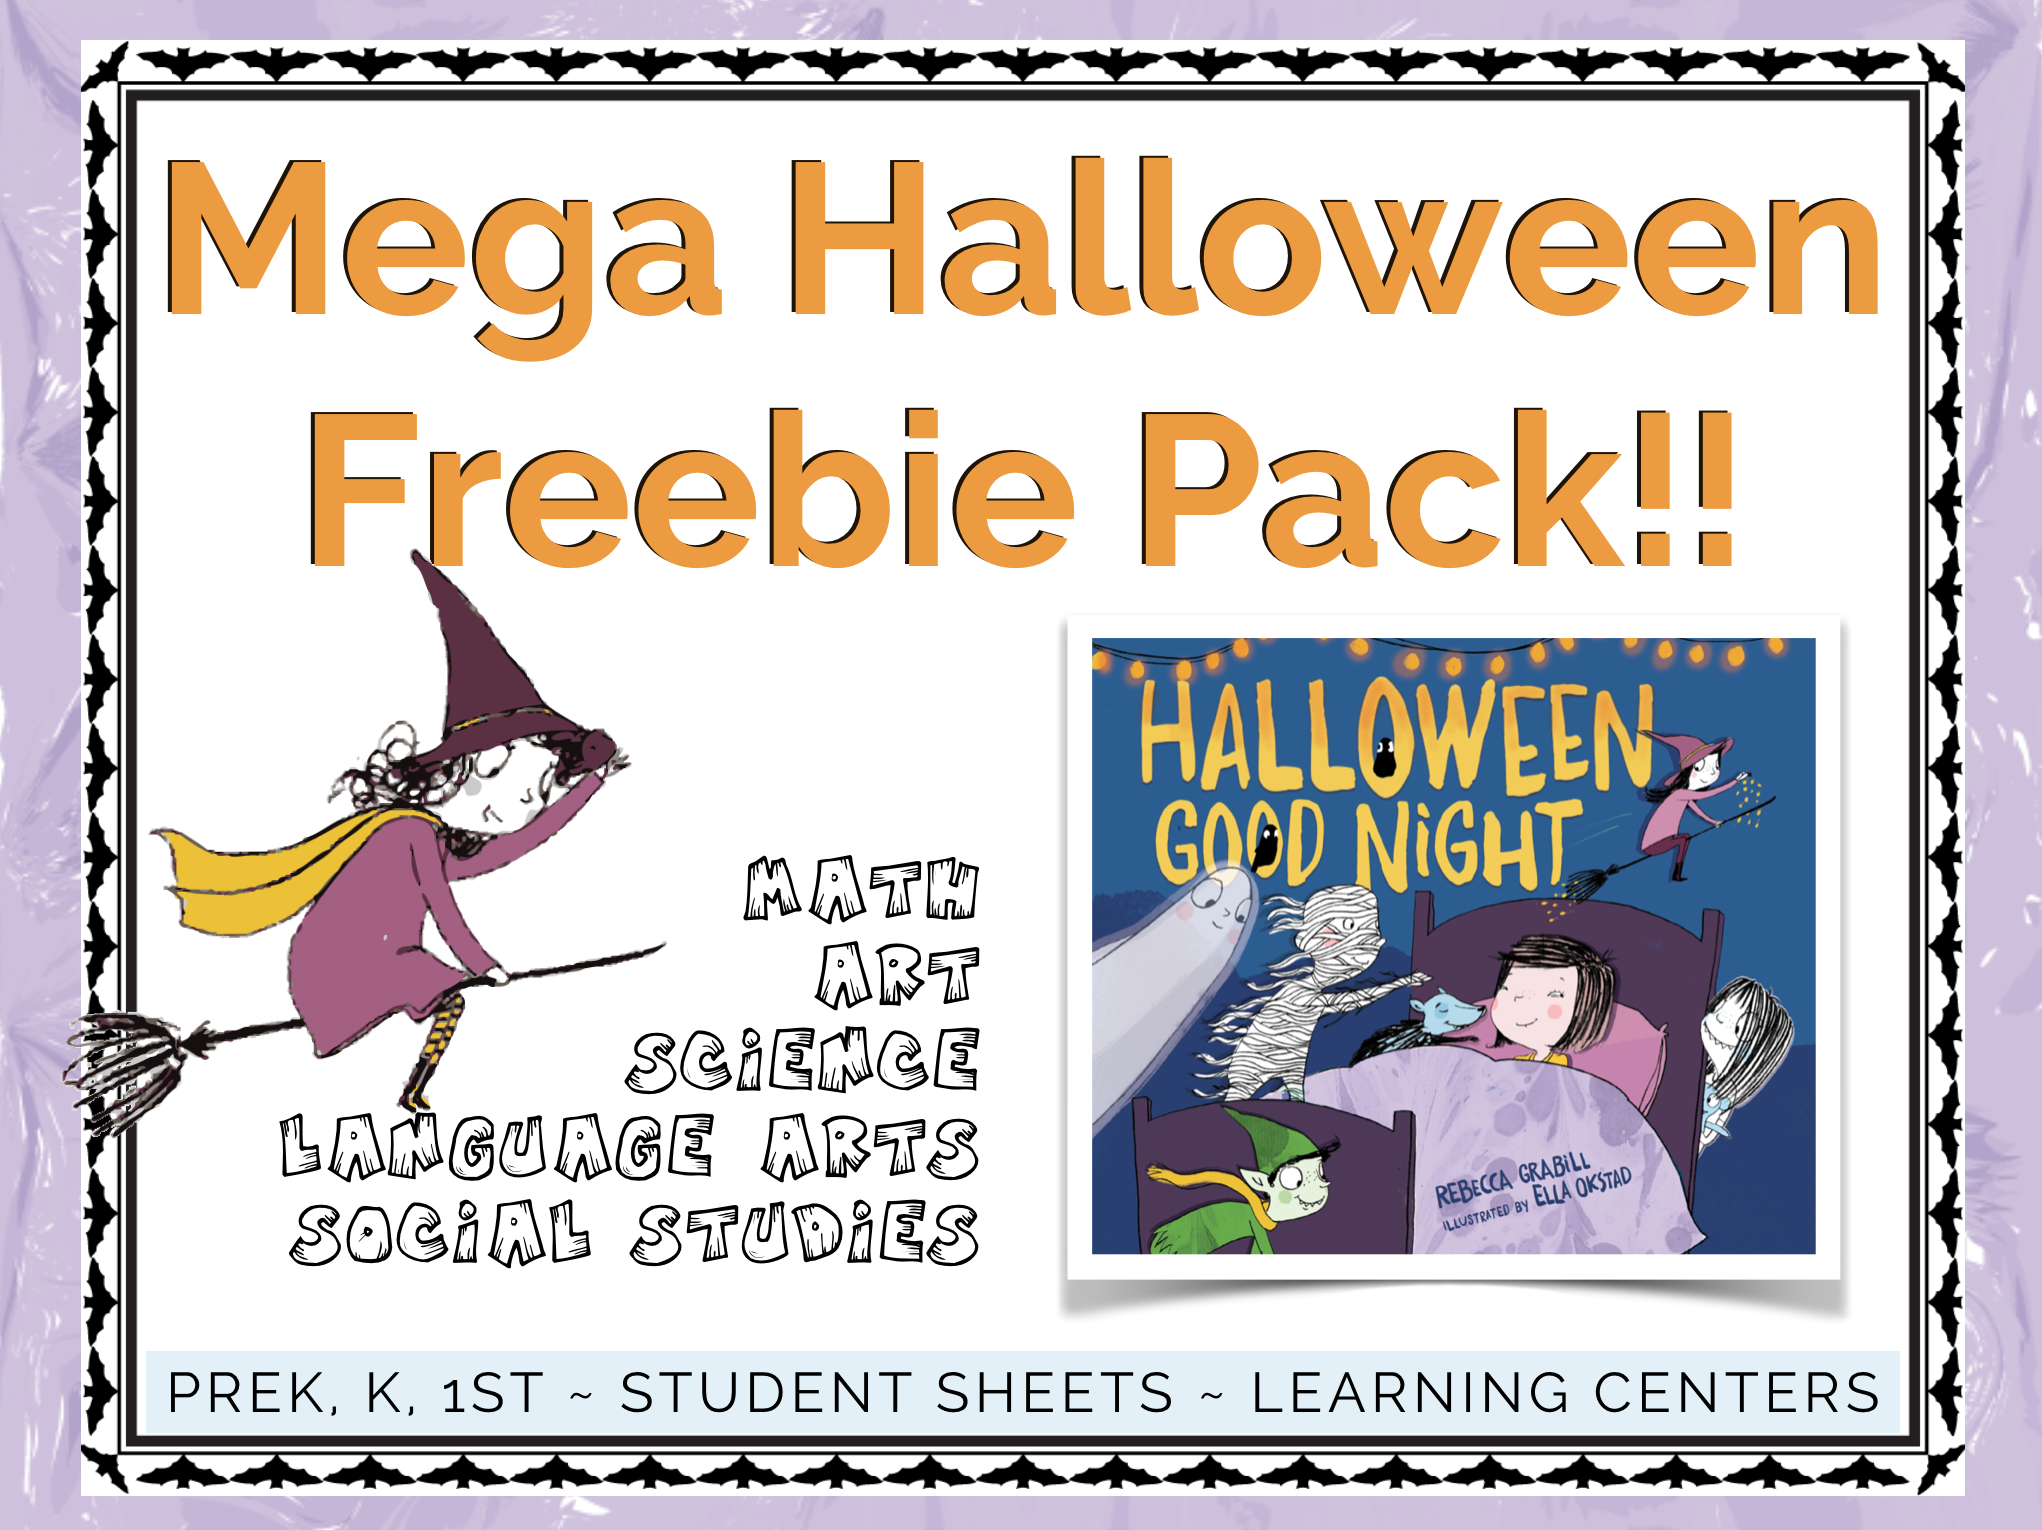 Mega Halloween Printable Pack goes along with the picture book Halloween Good Night by Rebecca Grabill. Everything you need for language arts, math, science, social studies, art.